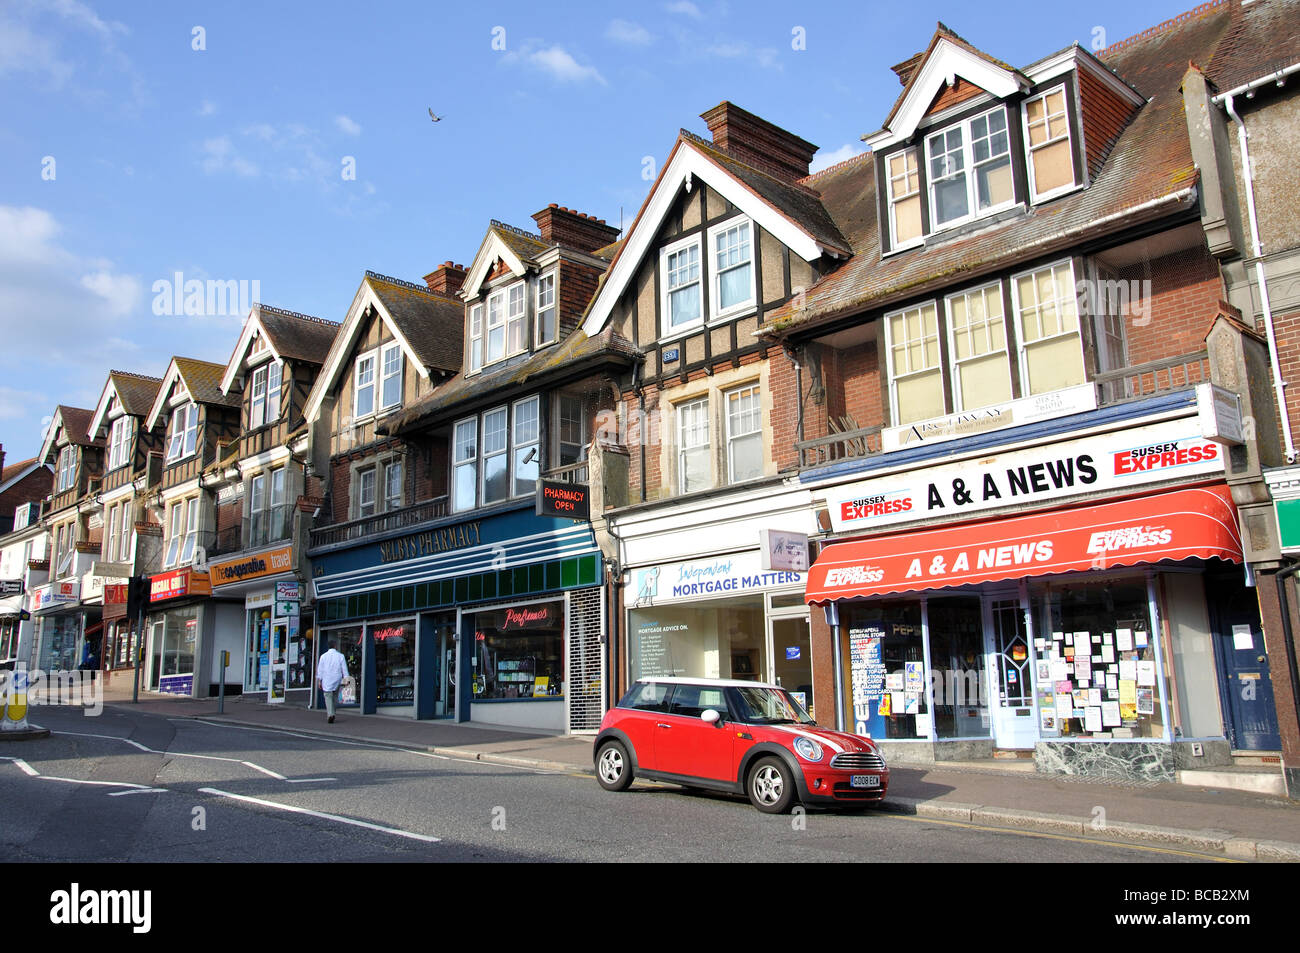 High Street, Uckfield, East Sussex, England, United Kingdom - Stock Image